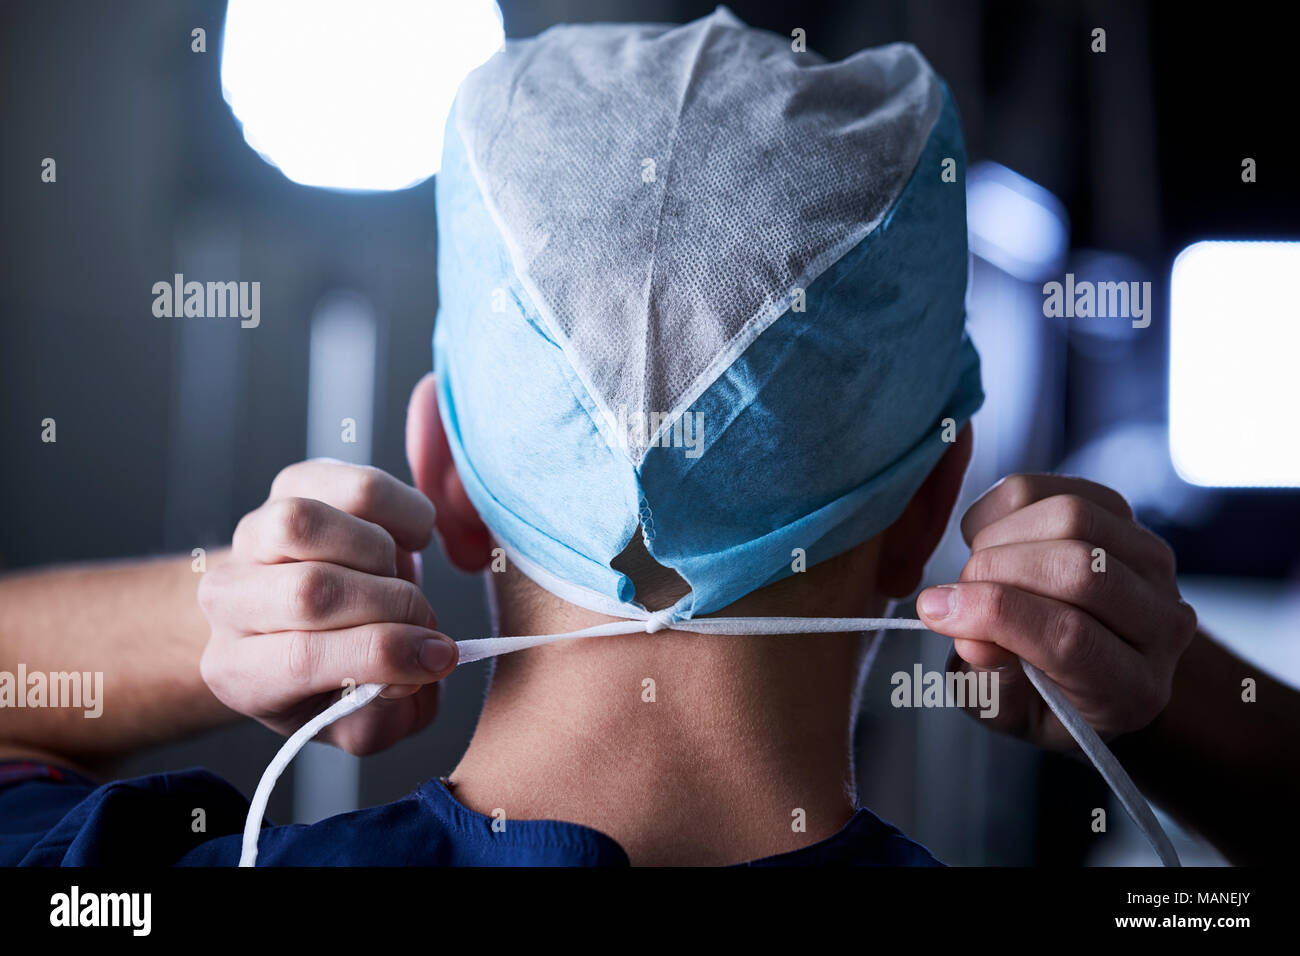 Surgeon tying surgical cap in preparation, back view - Stock Image